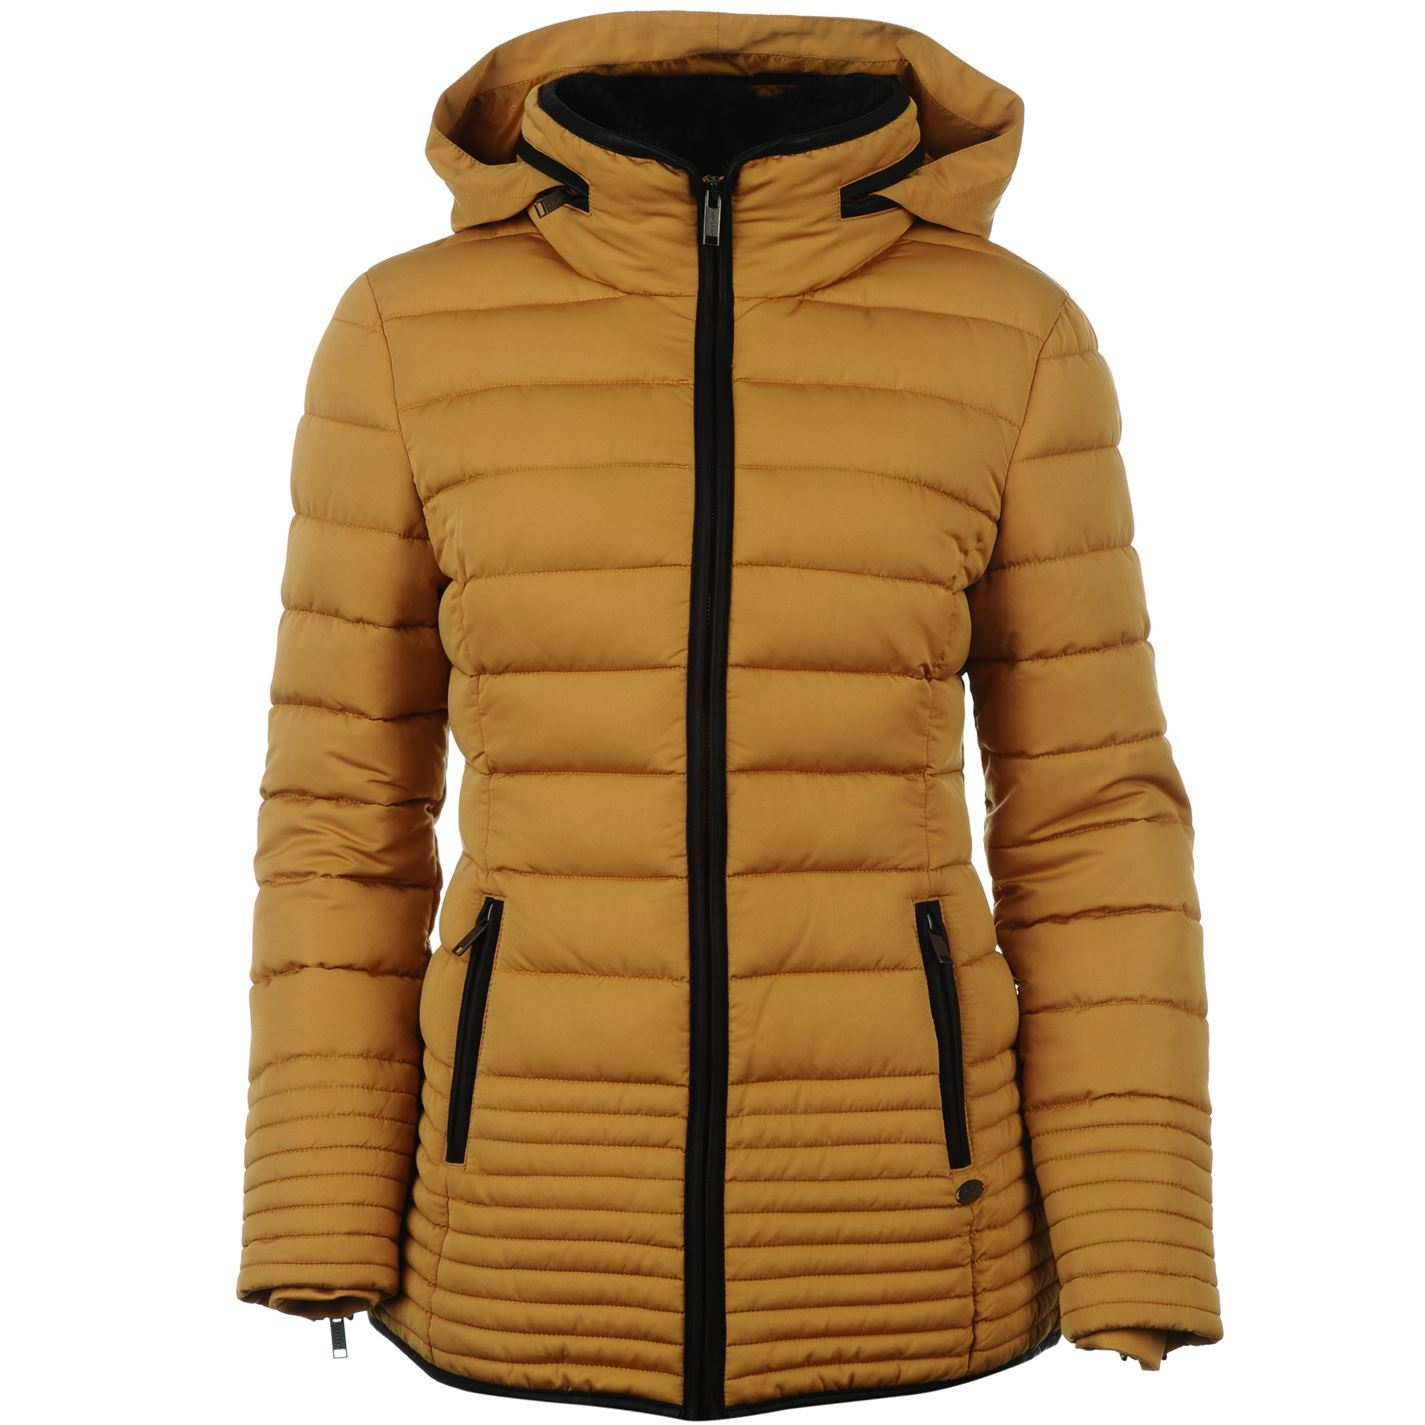 Find bubble jackets for women at ShopStyle. Shop the latest collection of bubble jackets for women from the most popular stores - all in one place. 7 For All Mankind Bubble Jacket in White Fashion $ $ Get a Sale Alert 15% Off*: FALL15 at 24 Sèvres Rick.